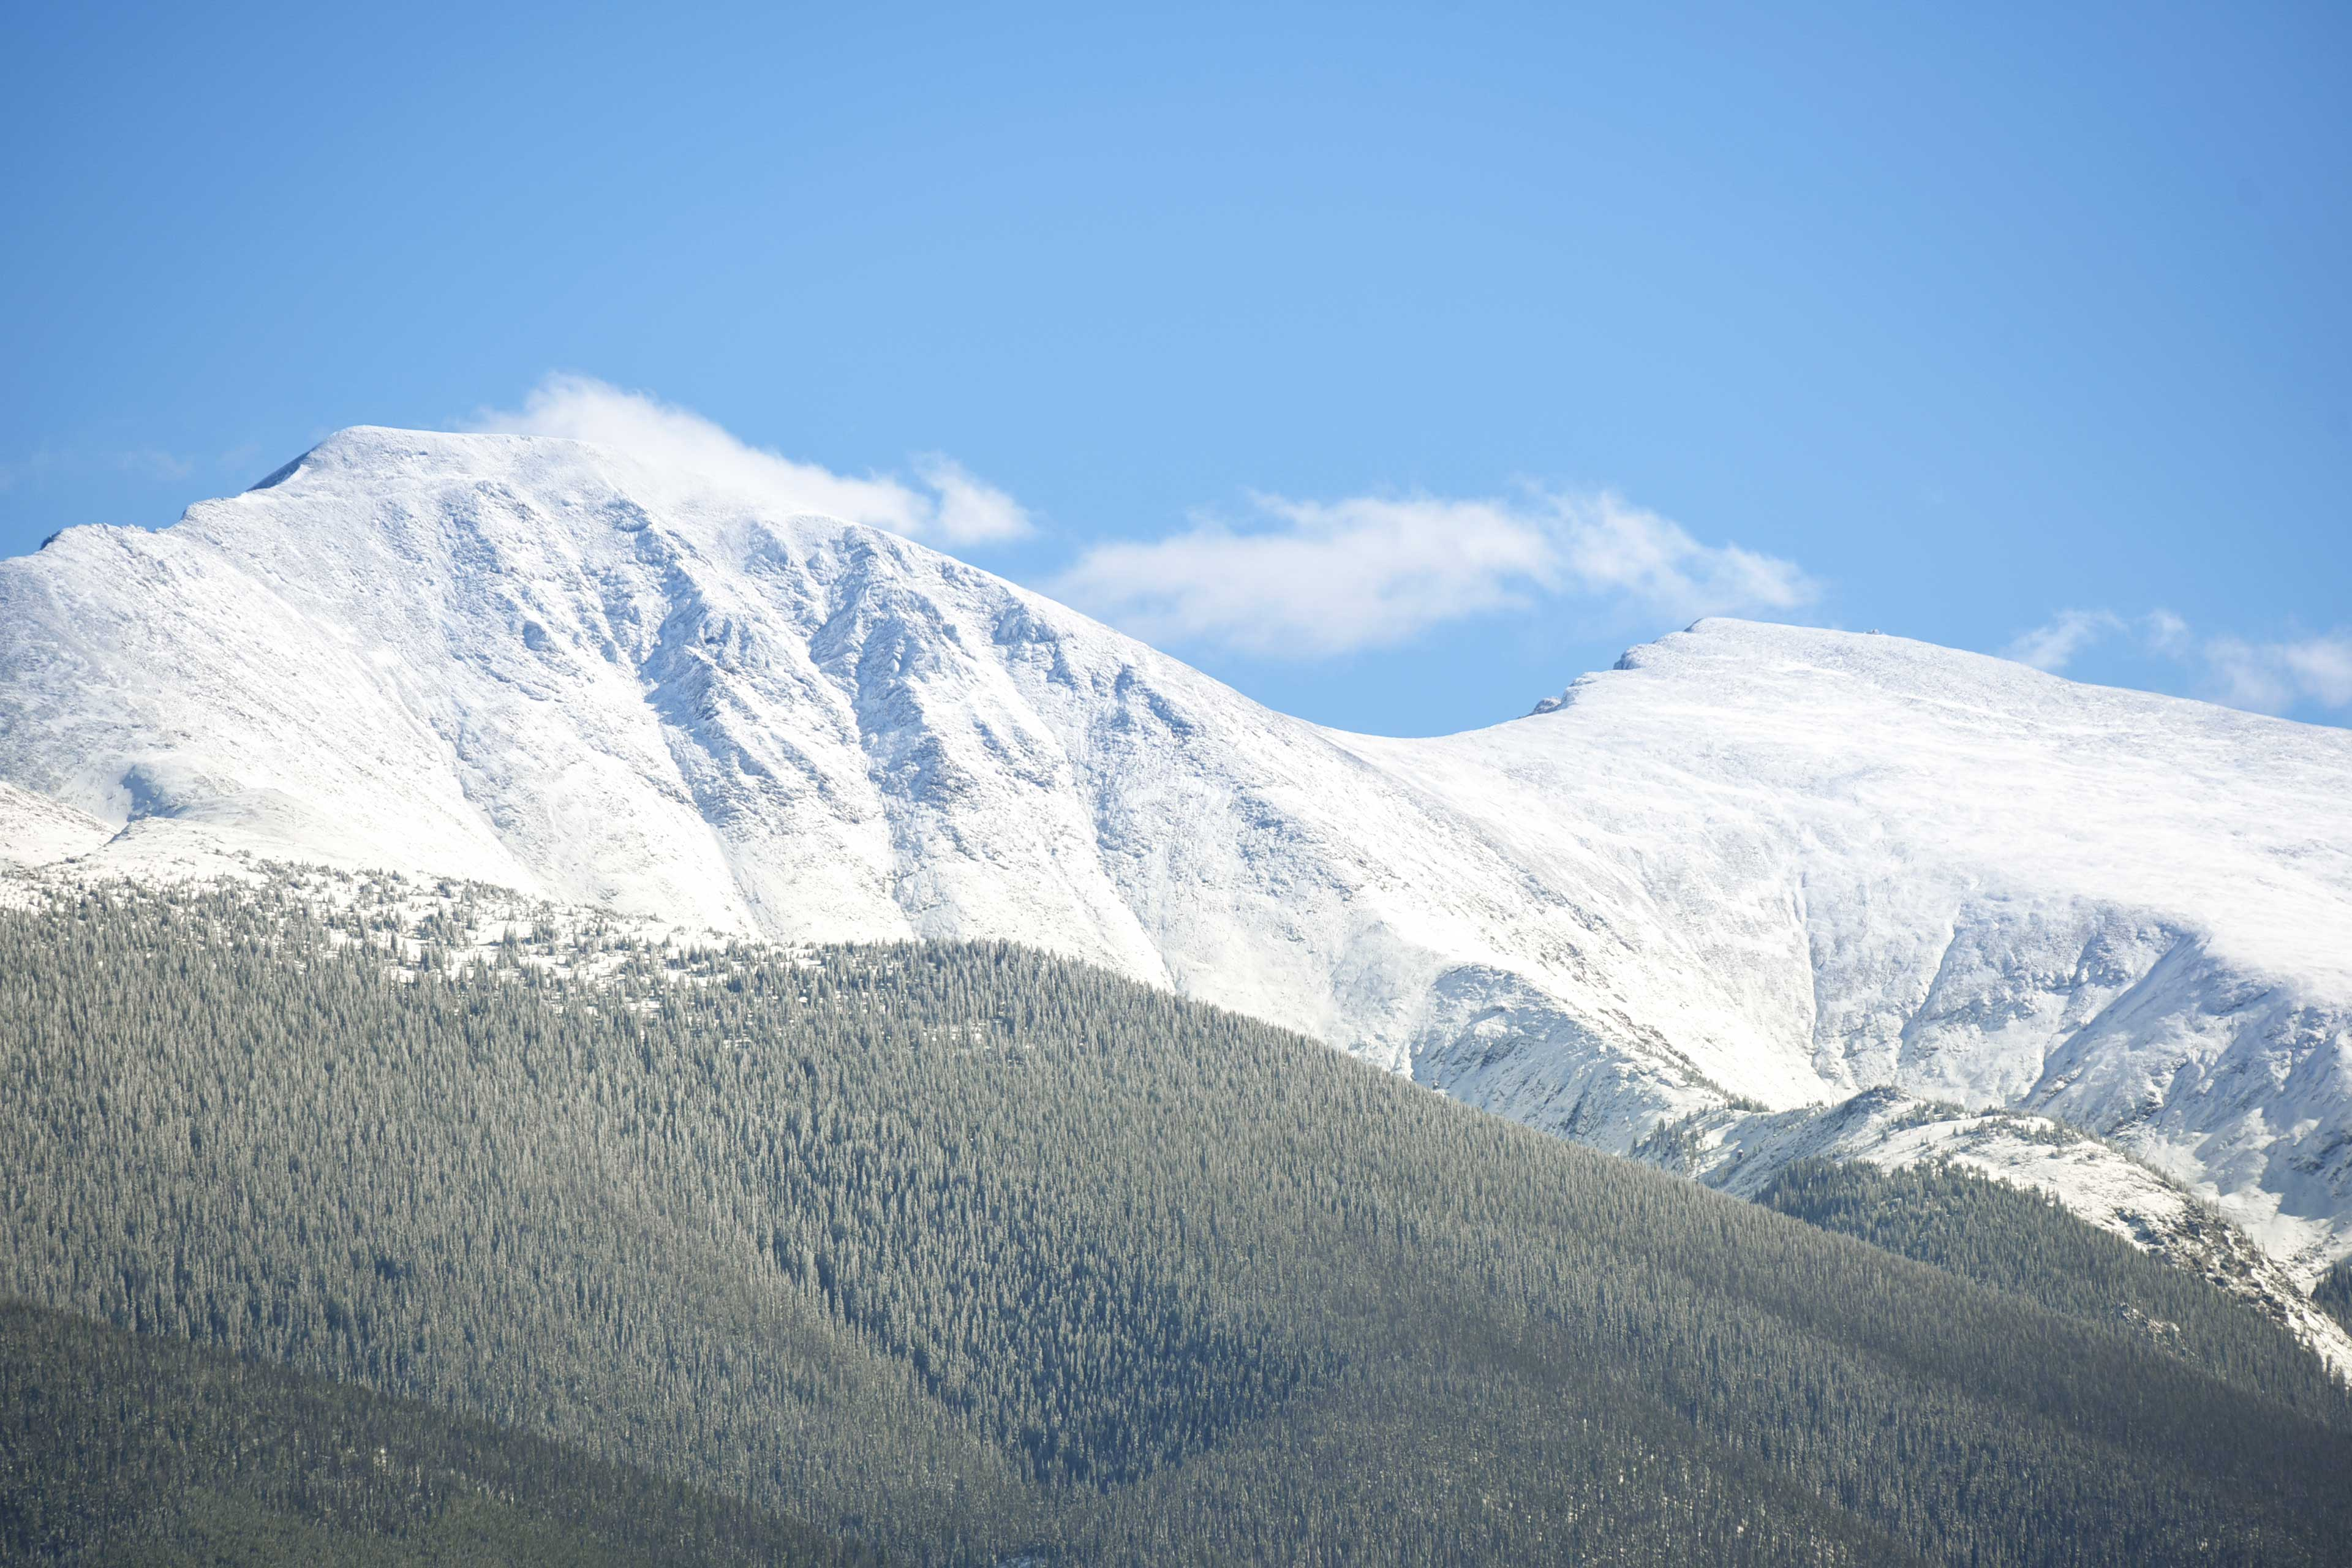 The Rocky Mountains are the perfect destination year-round.